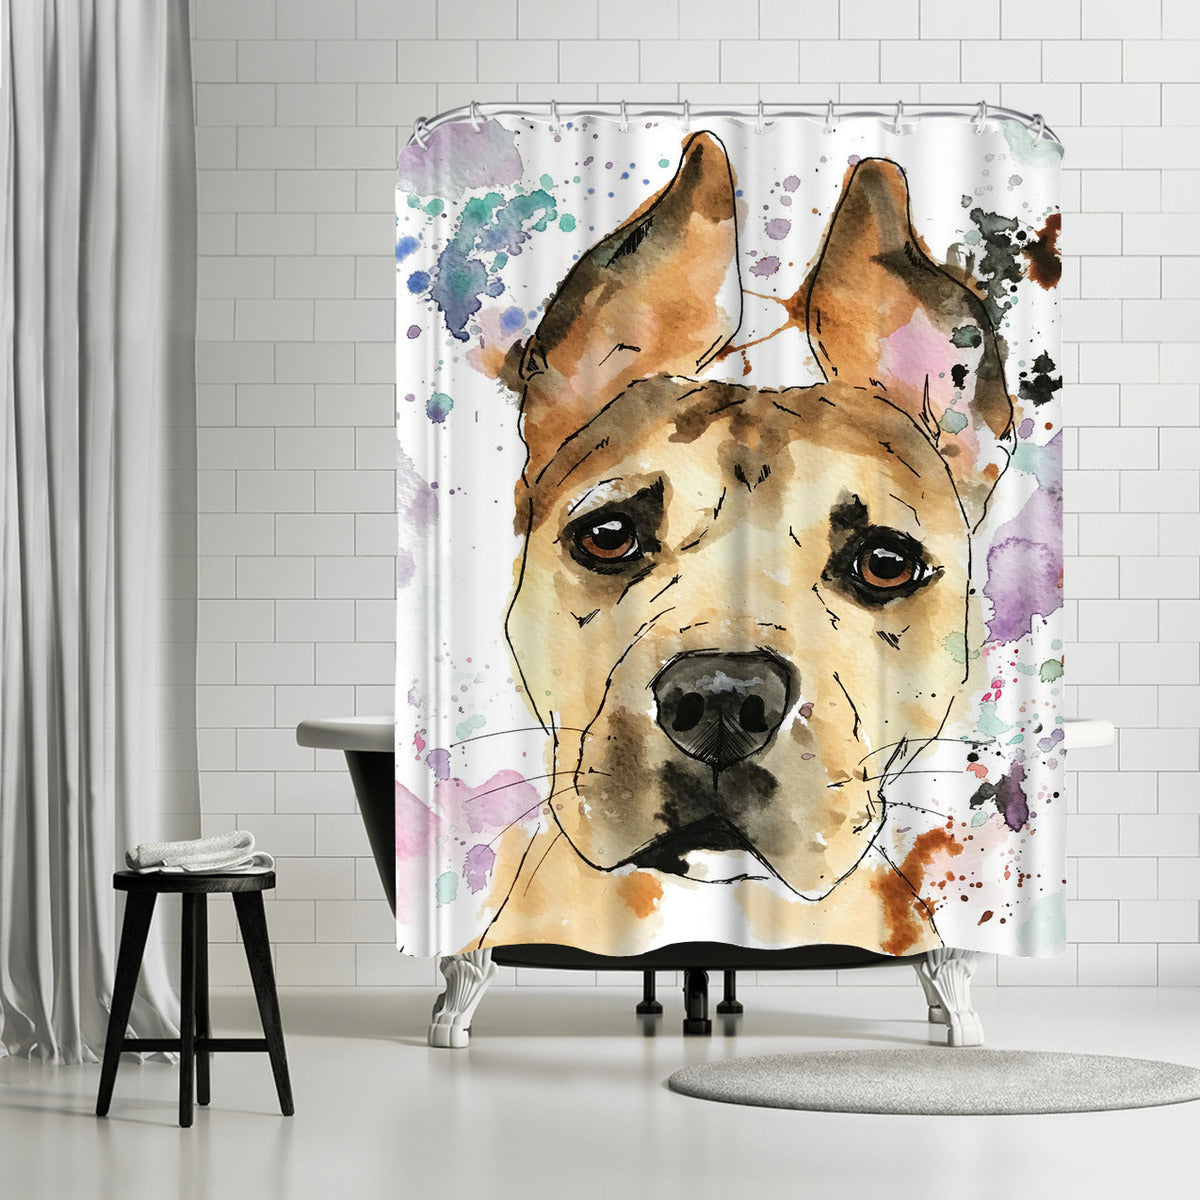 Sadie by Allison Gray Shower Curtain - Shower Curtain - Americanflat